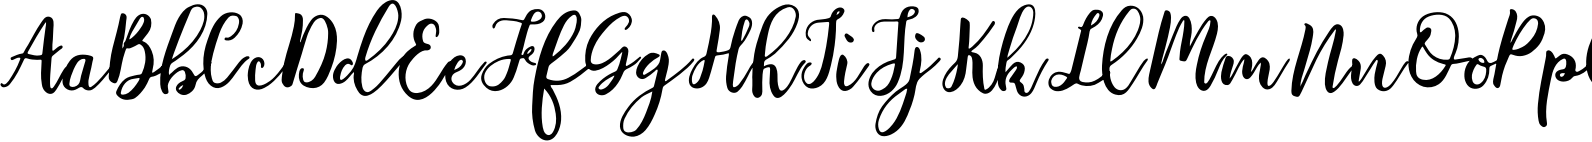 Instyle Font